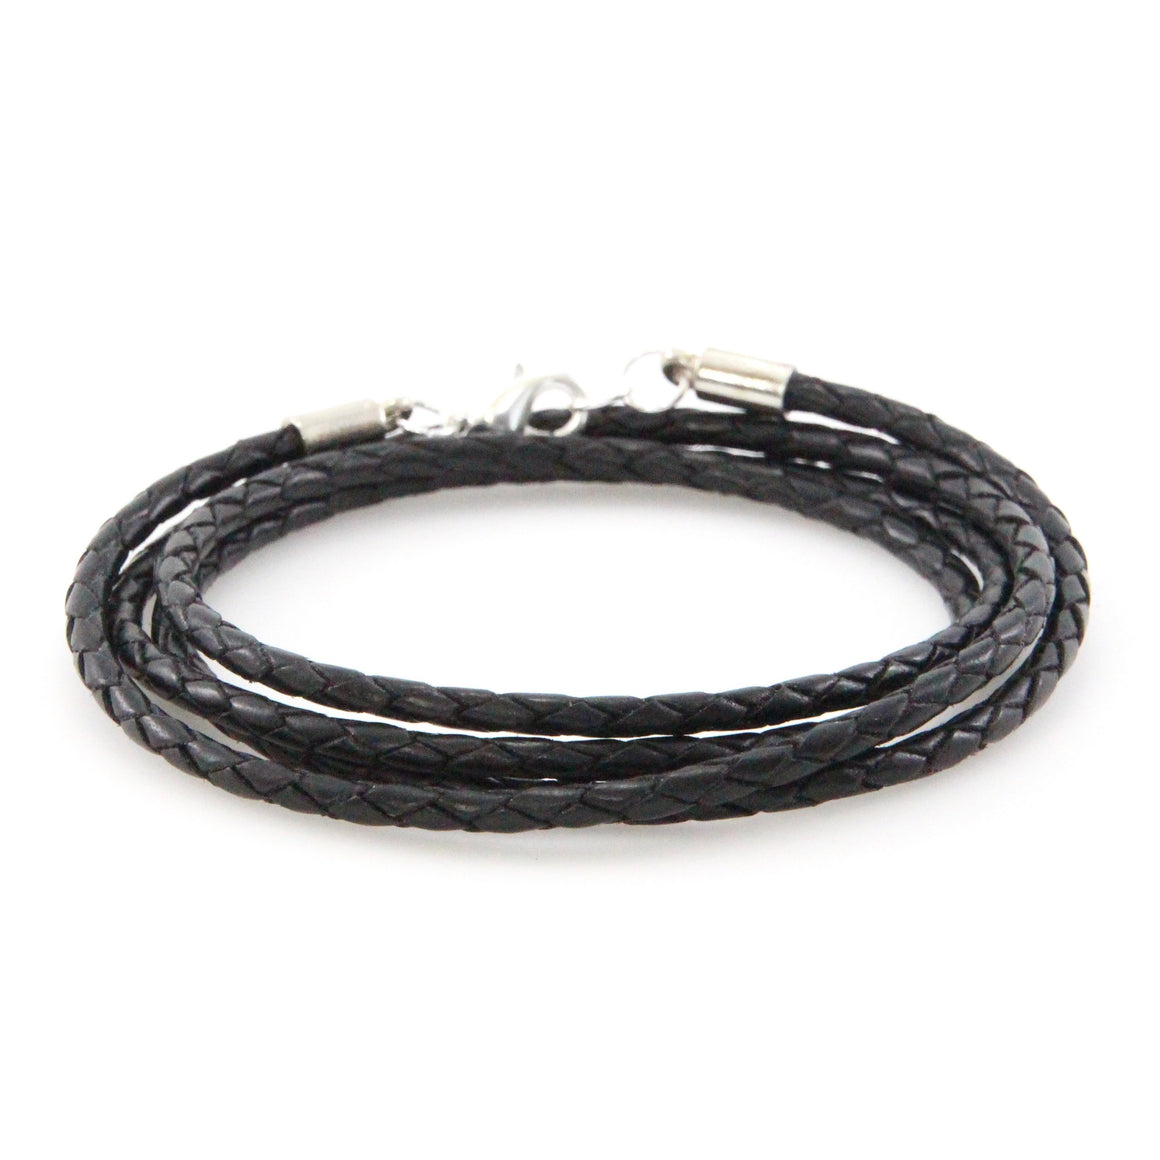 Silver + Braided Black Leather Wrap